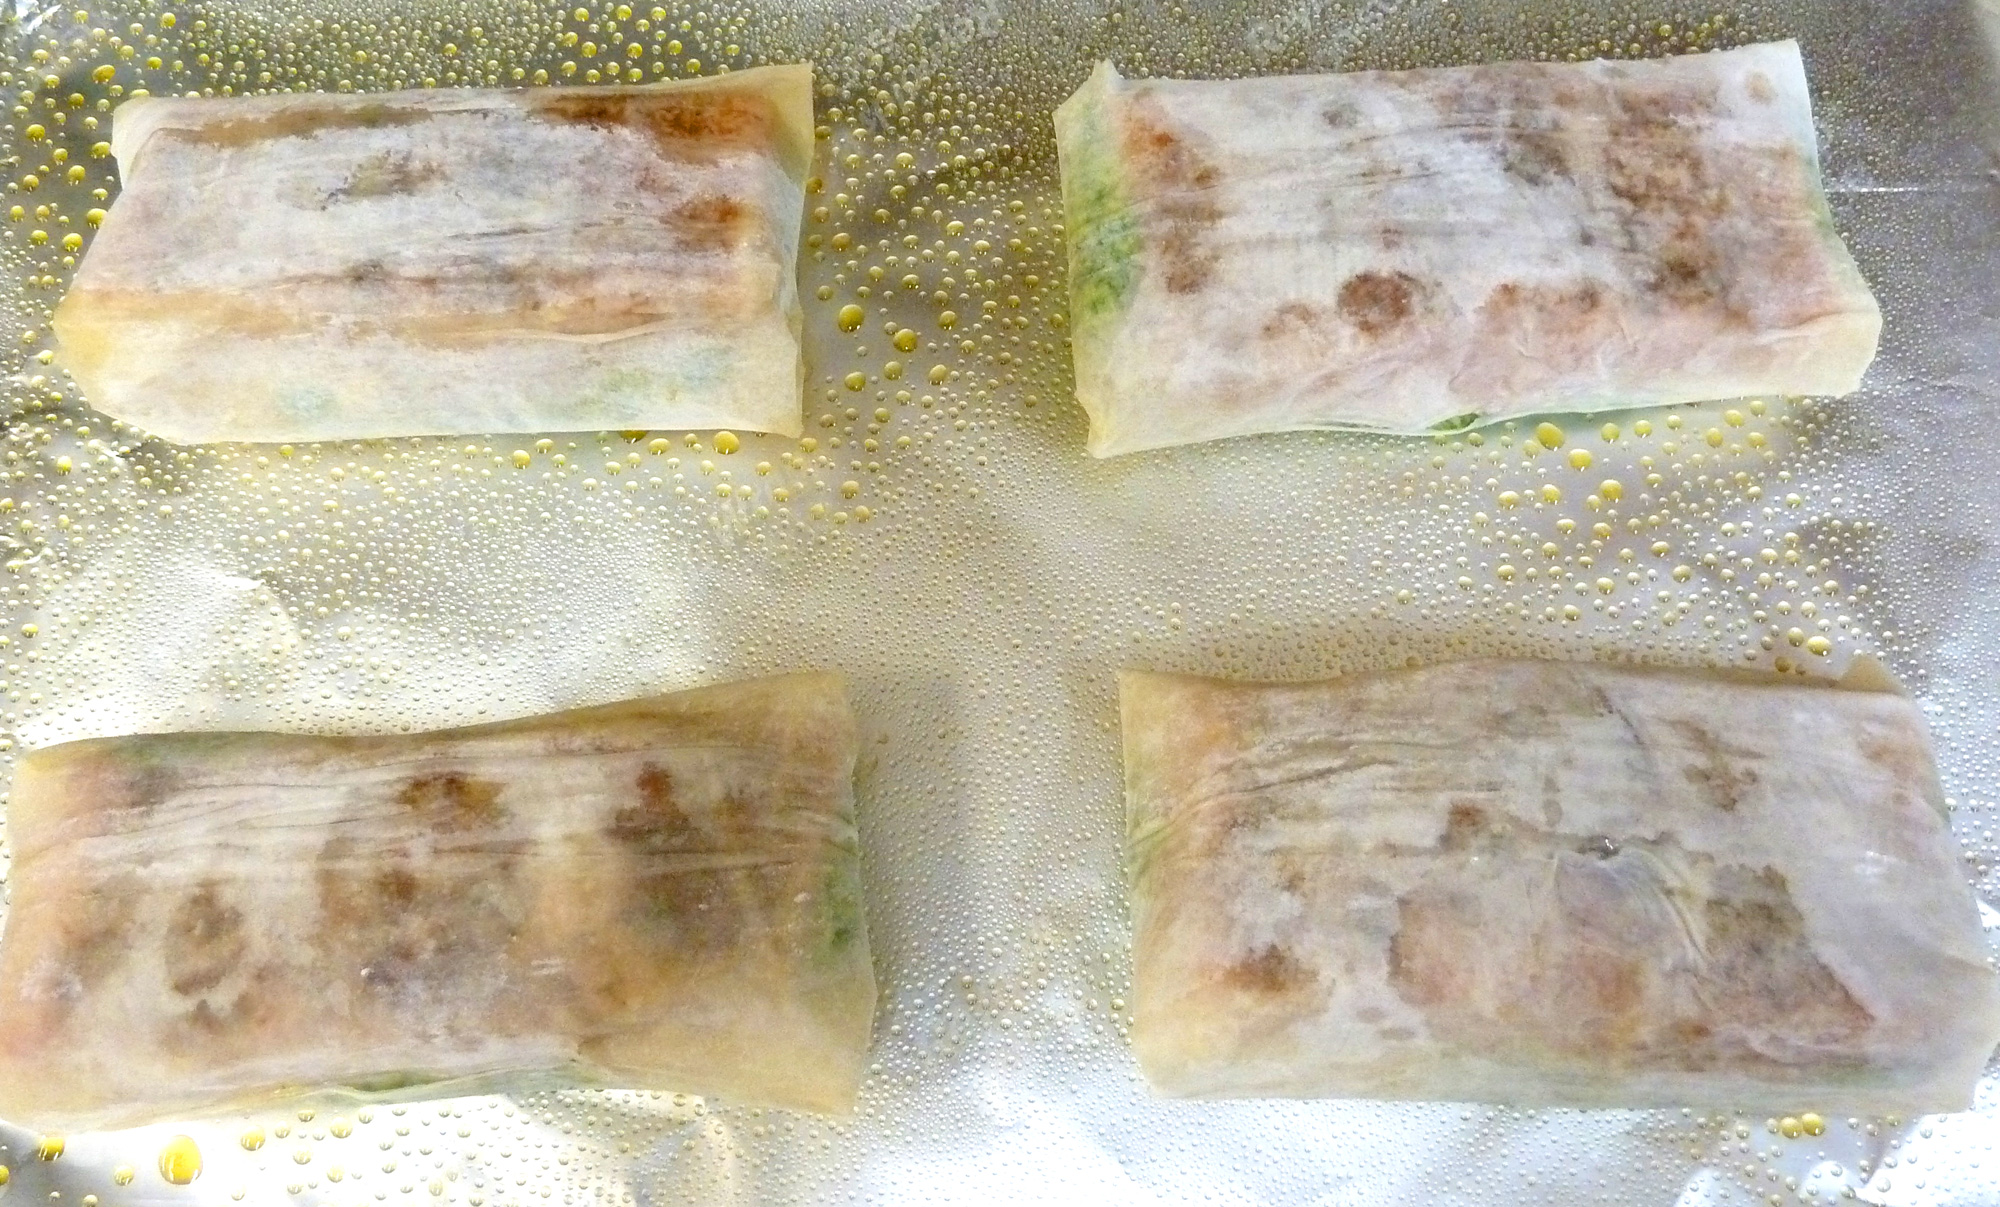 Phyllo-wrapped stuffed salmon ready for the oven.